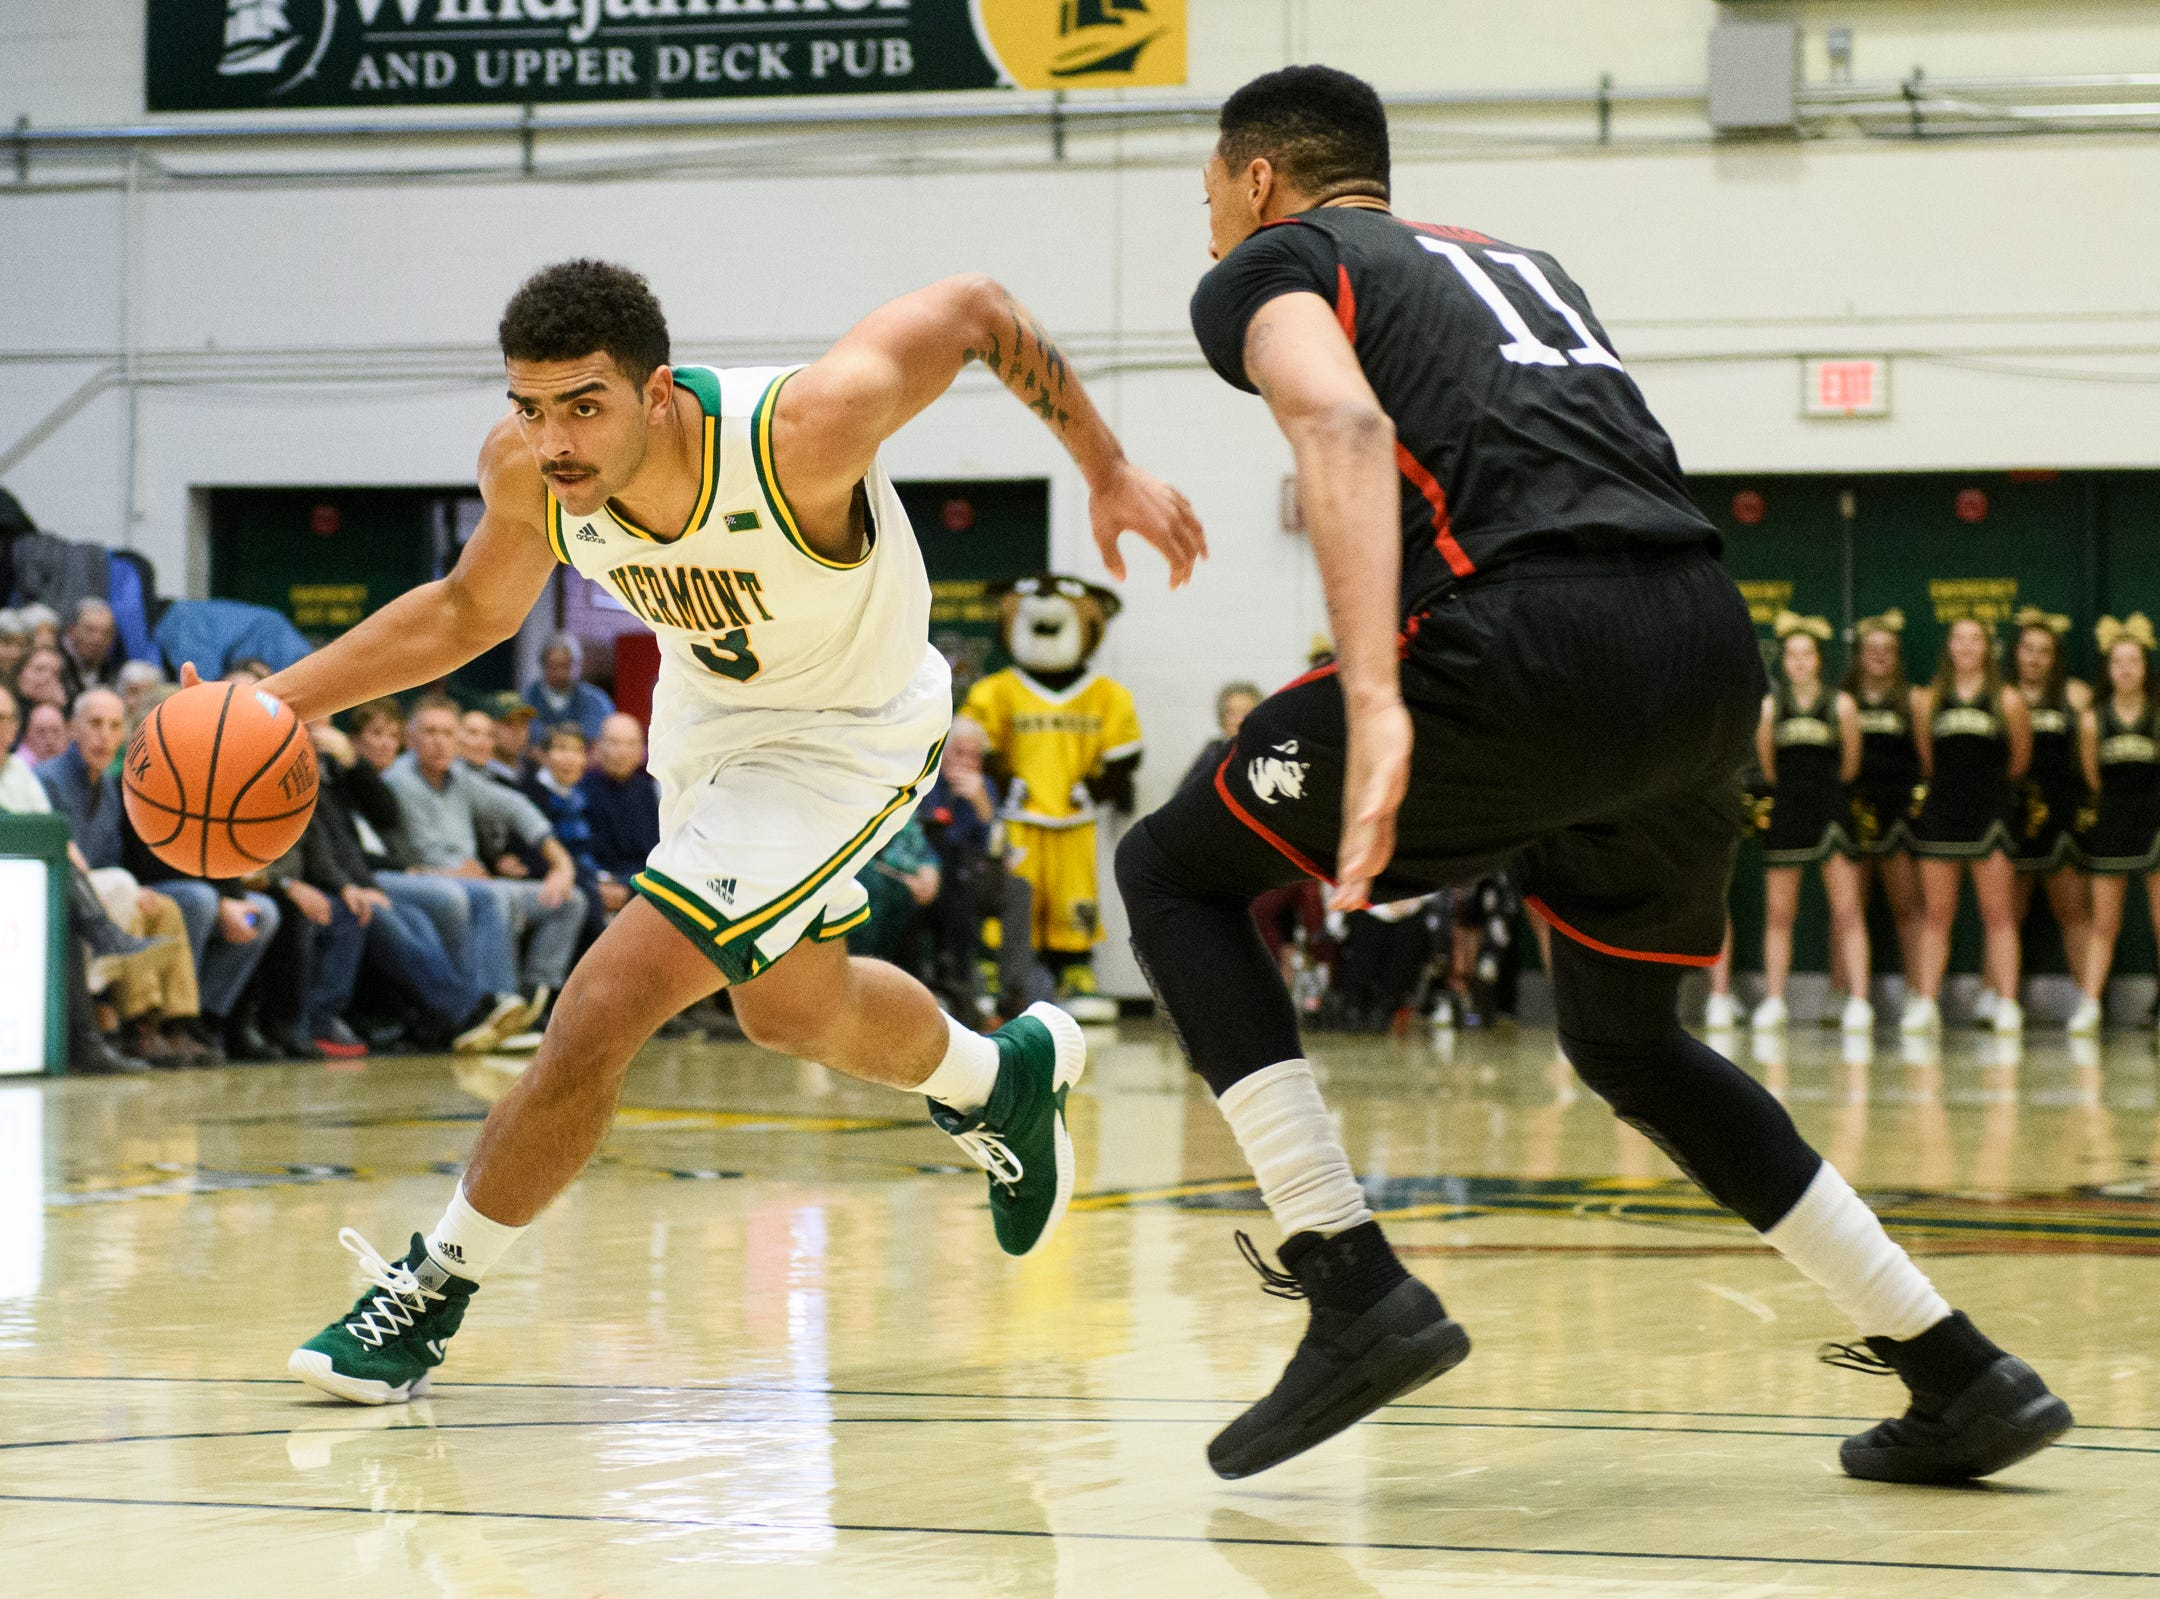 Vermont forward Anthony Lamb (3) drives to the hoop past Northeastern's Jeremy Miller (11) during the men's basketball game between the Northeastern Huskies and the Vermont Catamounts at Patrick Gym on Sunday afternoon December 16, 2018 in Burlington.